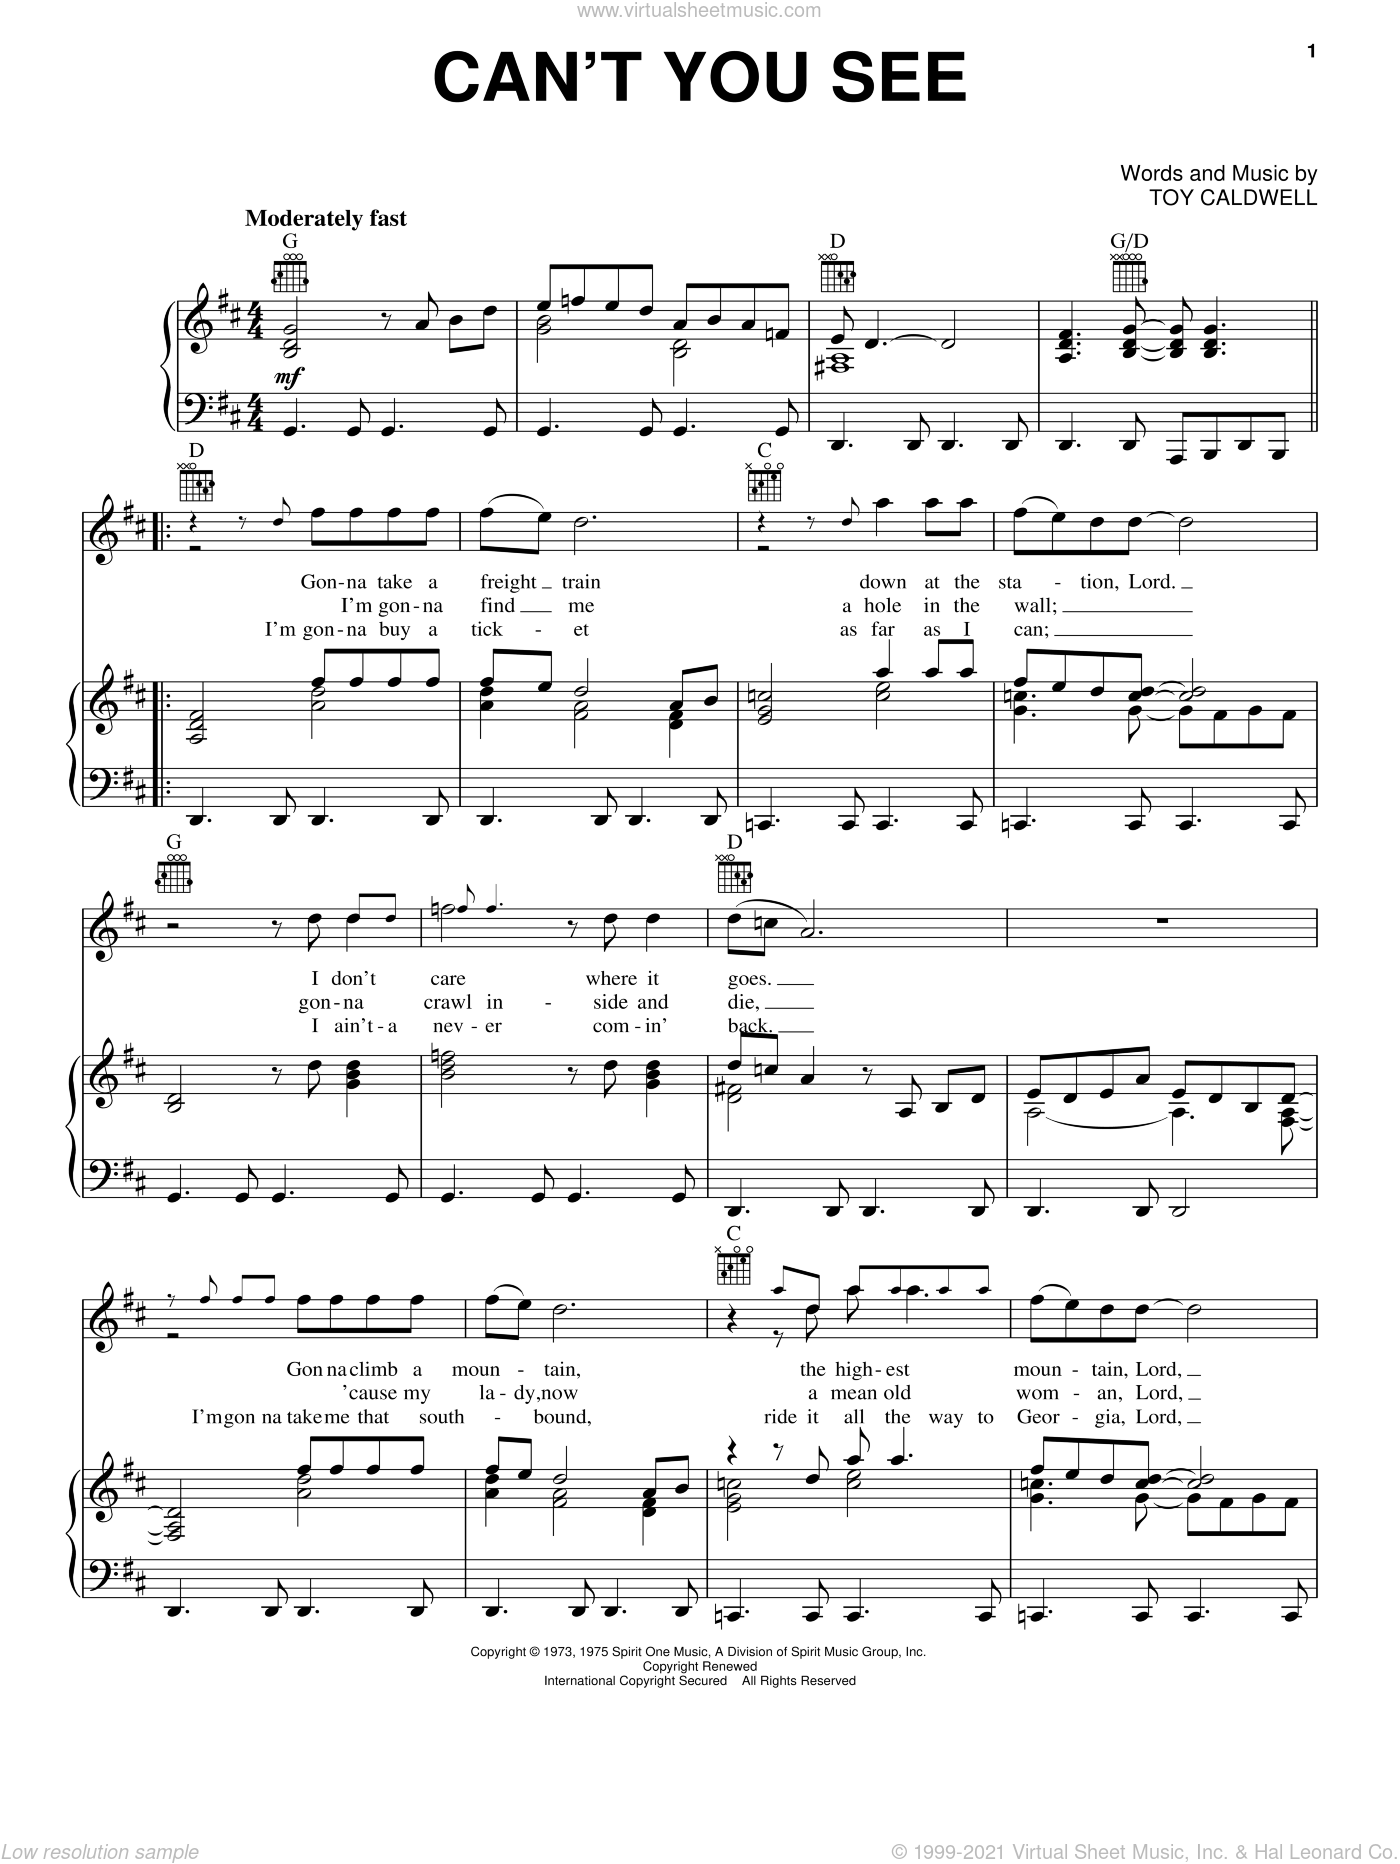 Can't You See sheet music for voice, piano or guitar by Toy Caldwell